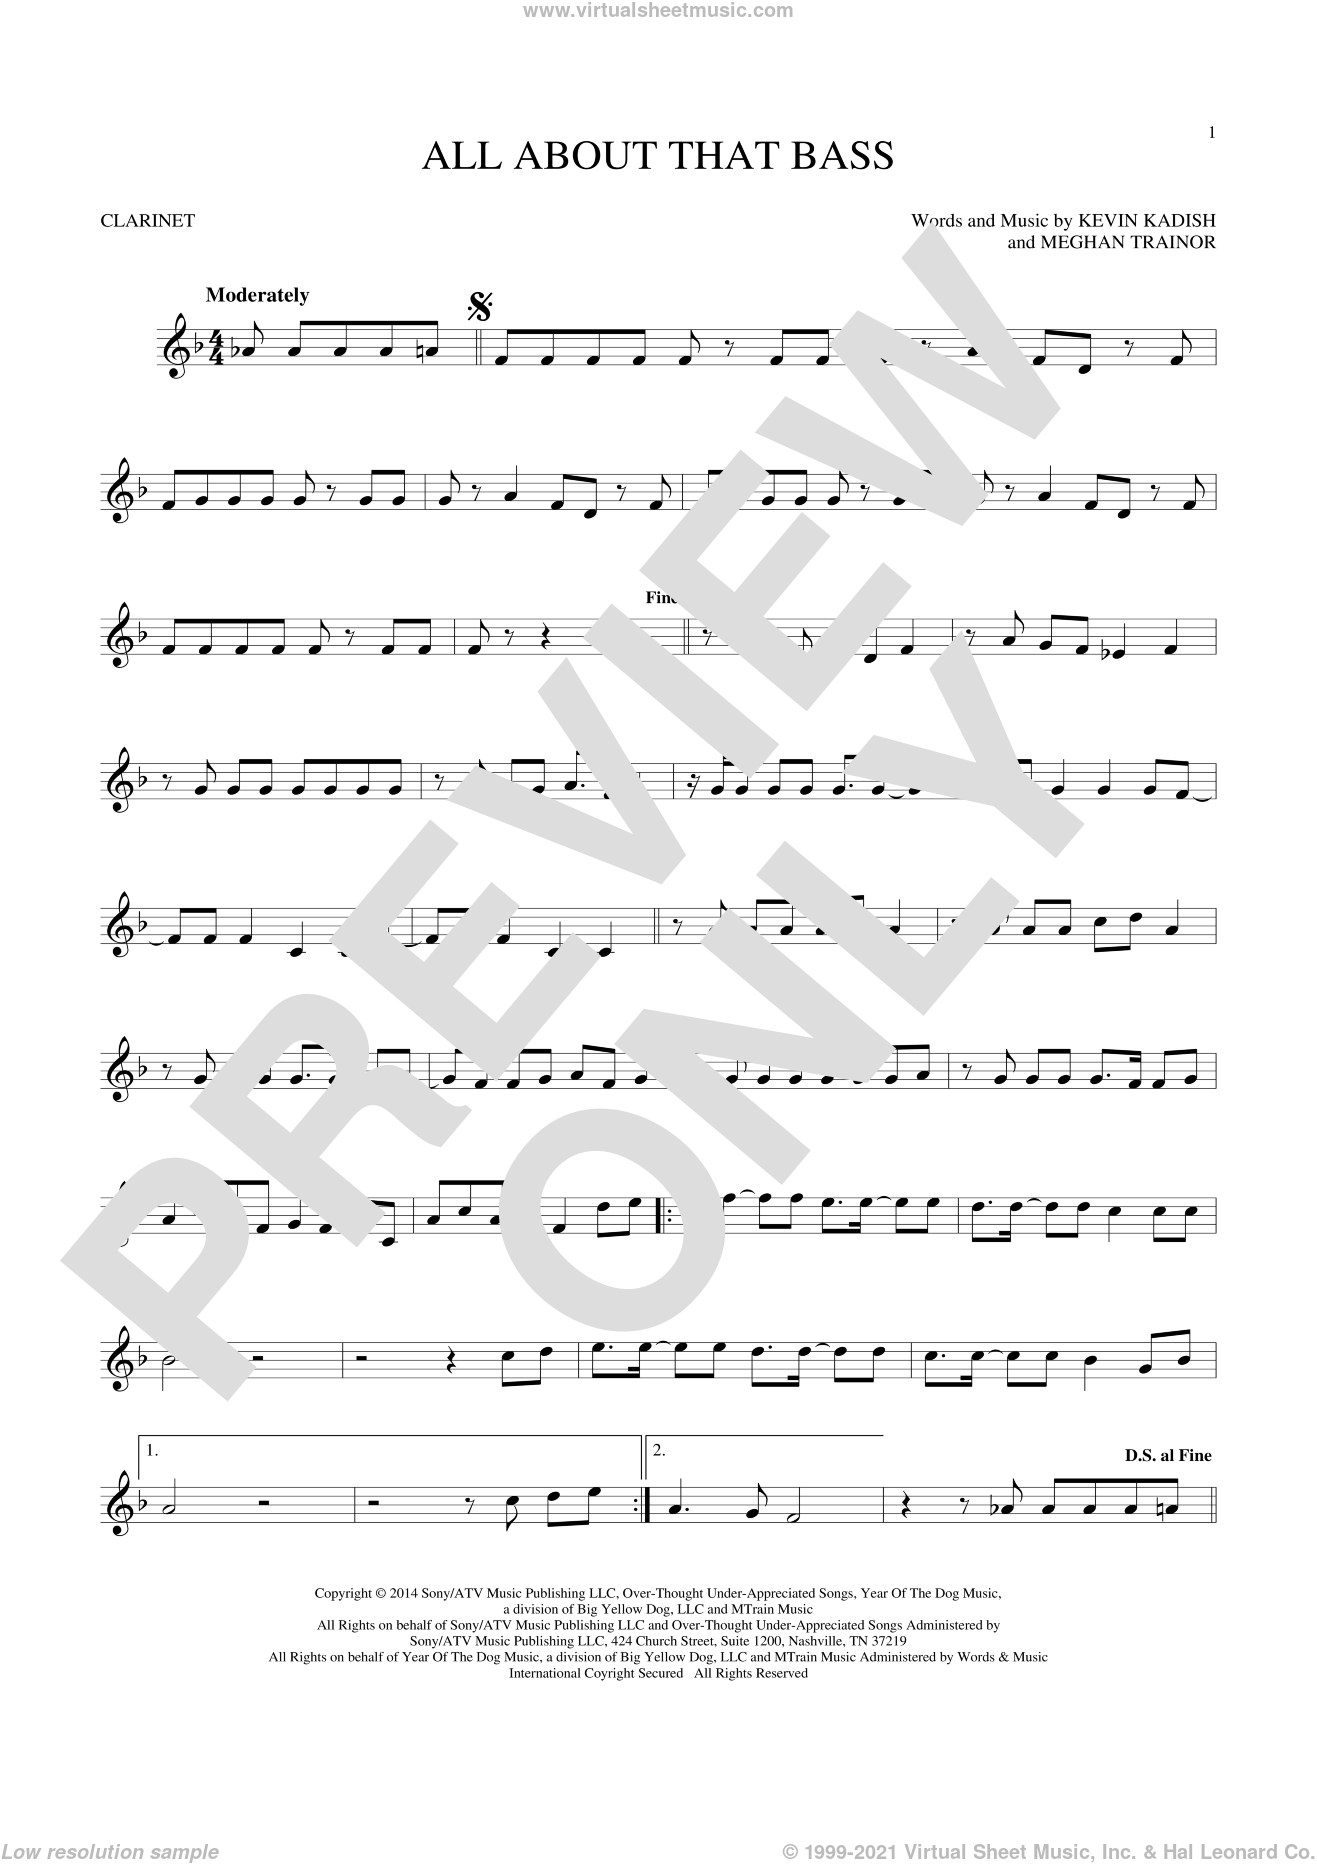 All About That Bass sheet music for clarinet solo by Meghan Trainor and Kevin Kadish, intermediate. Score Image Preview.